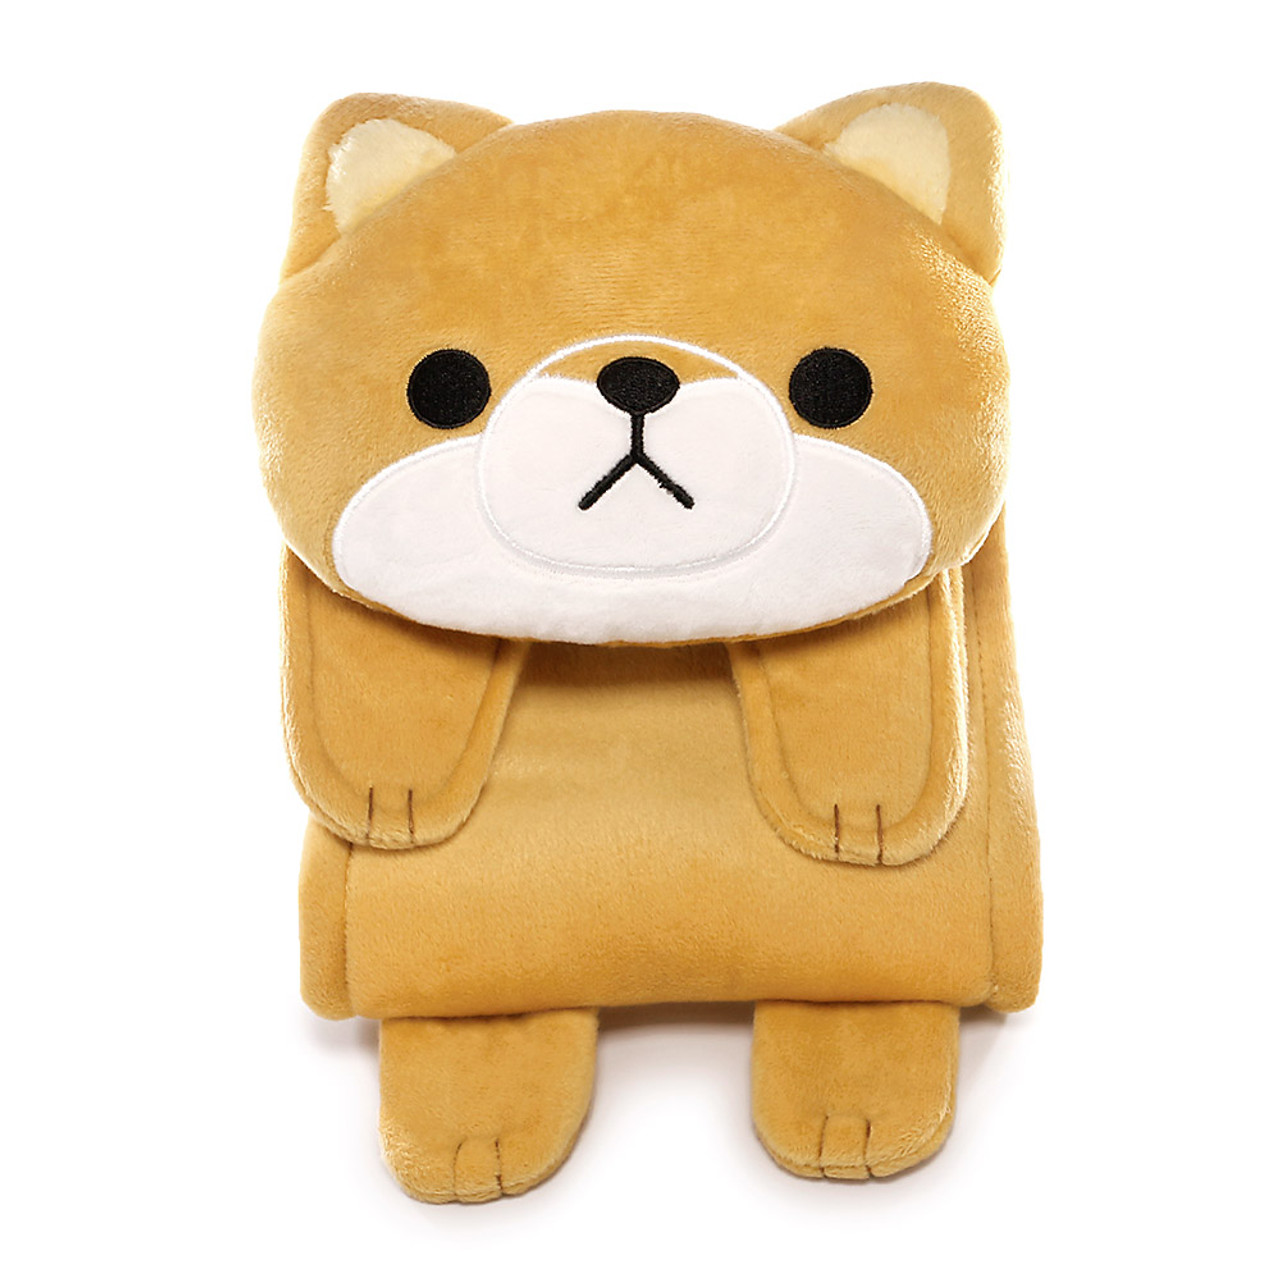 Meiho Shiba Inu Dog Toilet Roll Holder Plush Cover ( Front View )